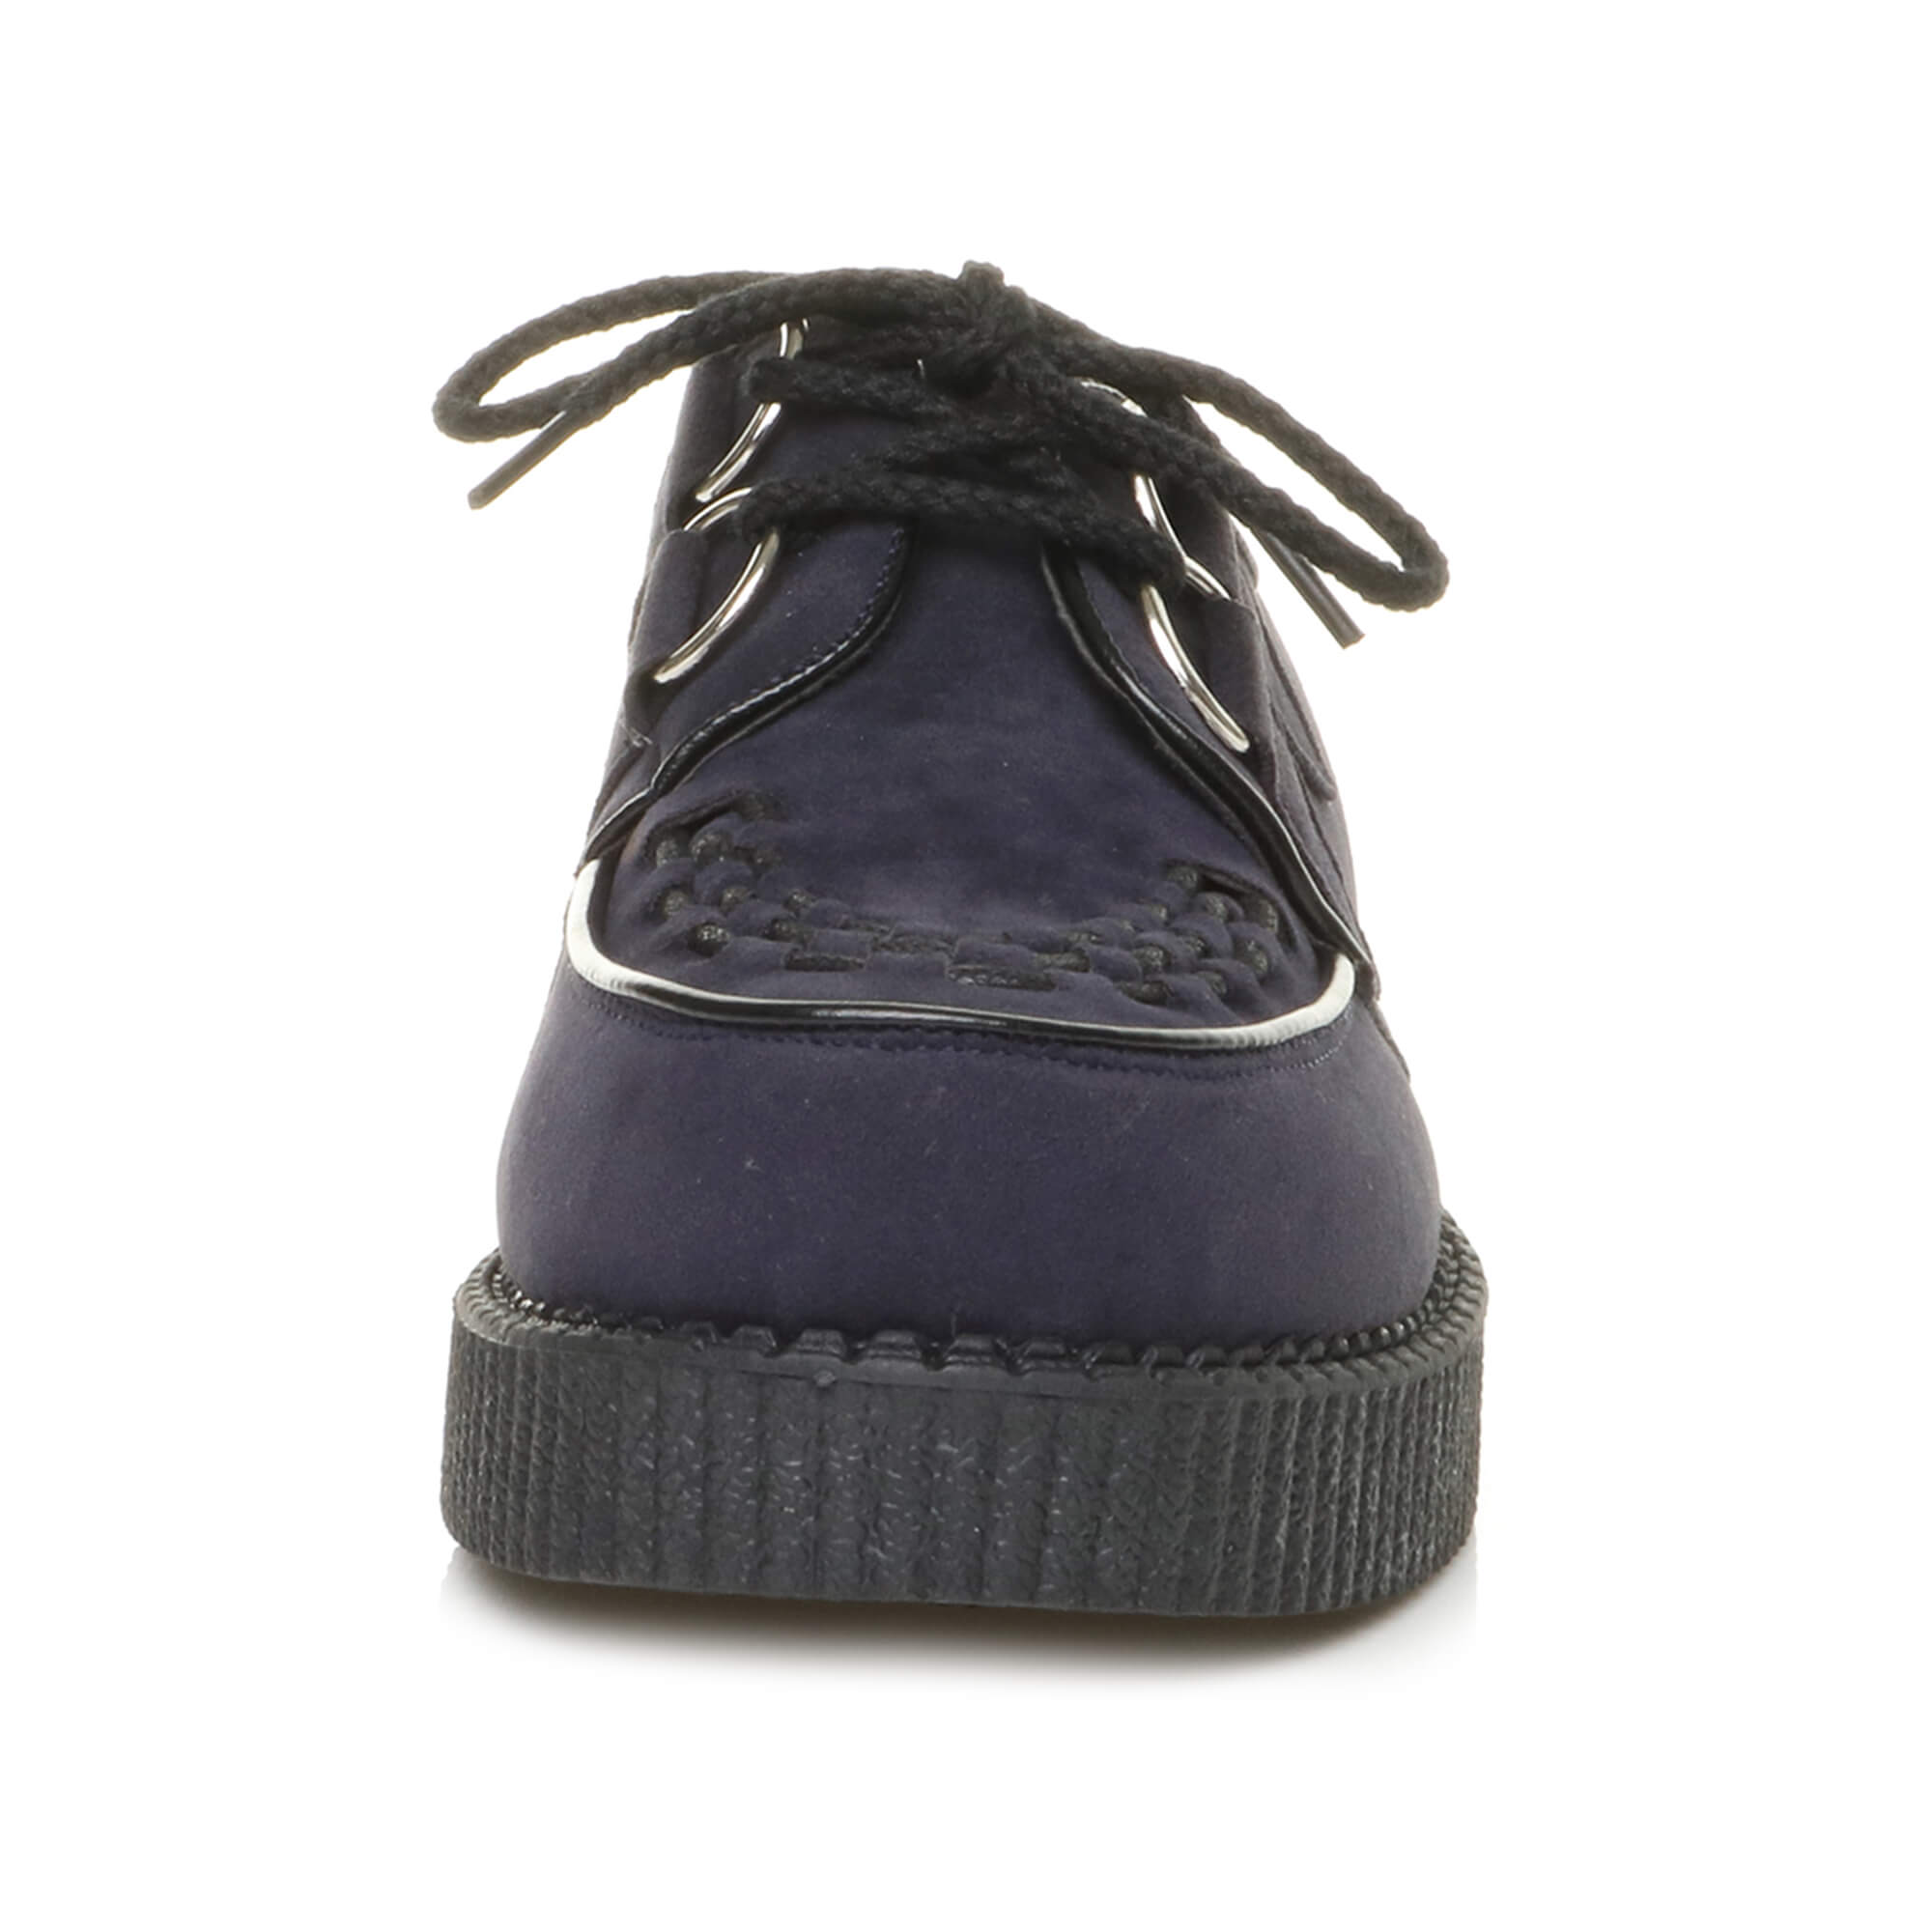 Homme rockabilly Lacets grunge punk goth rockabilly Homme maison close creepers TEDDY Garçon Chaussures Taille e7ce07